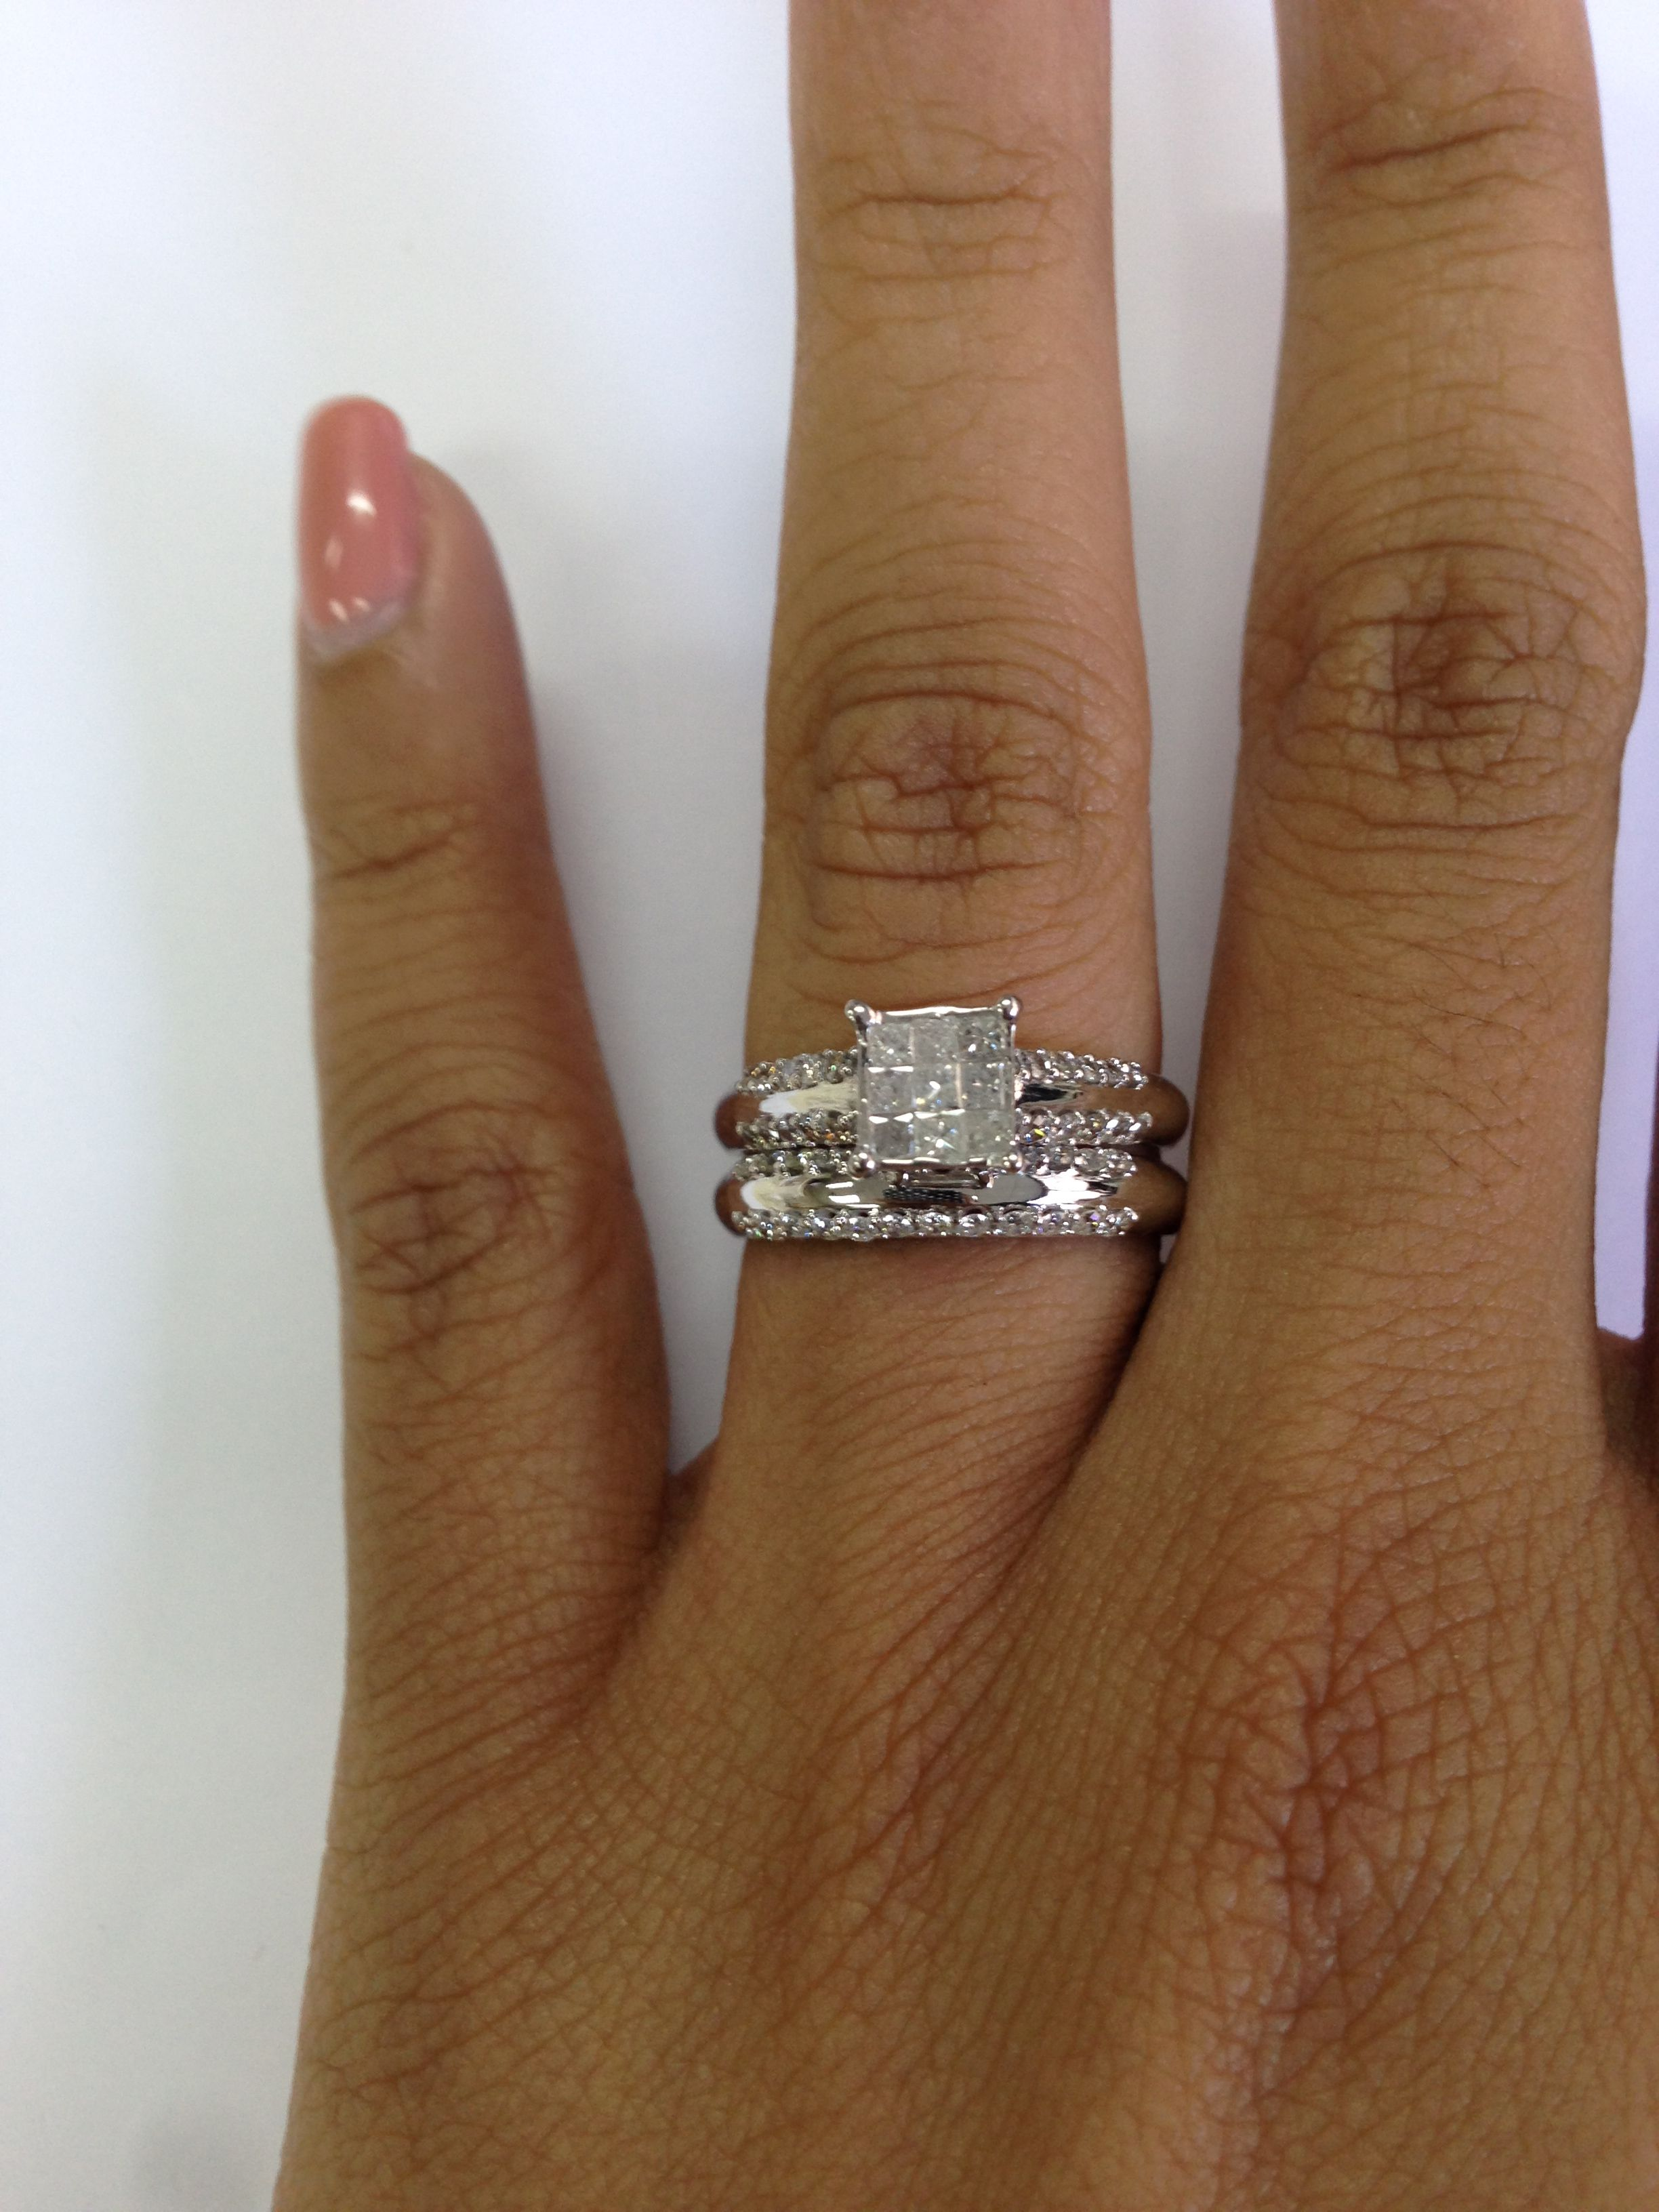 Rings on Hand Bridal Set BR104W (Engagement Ring and